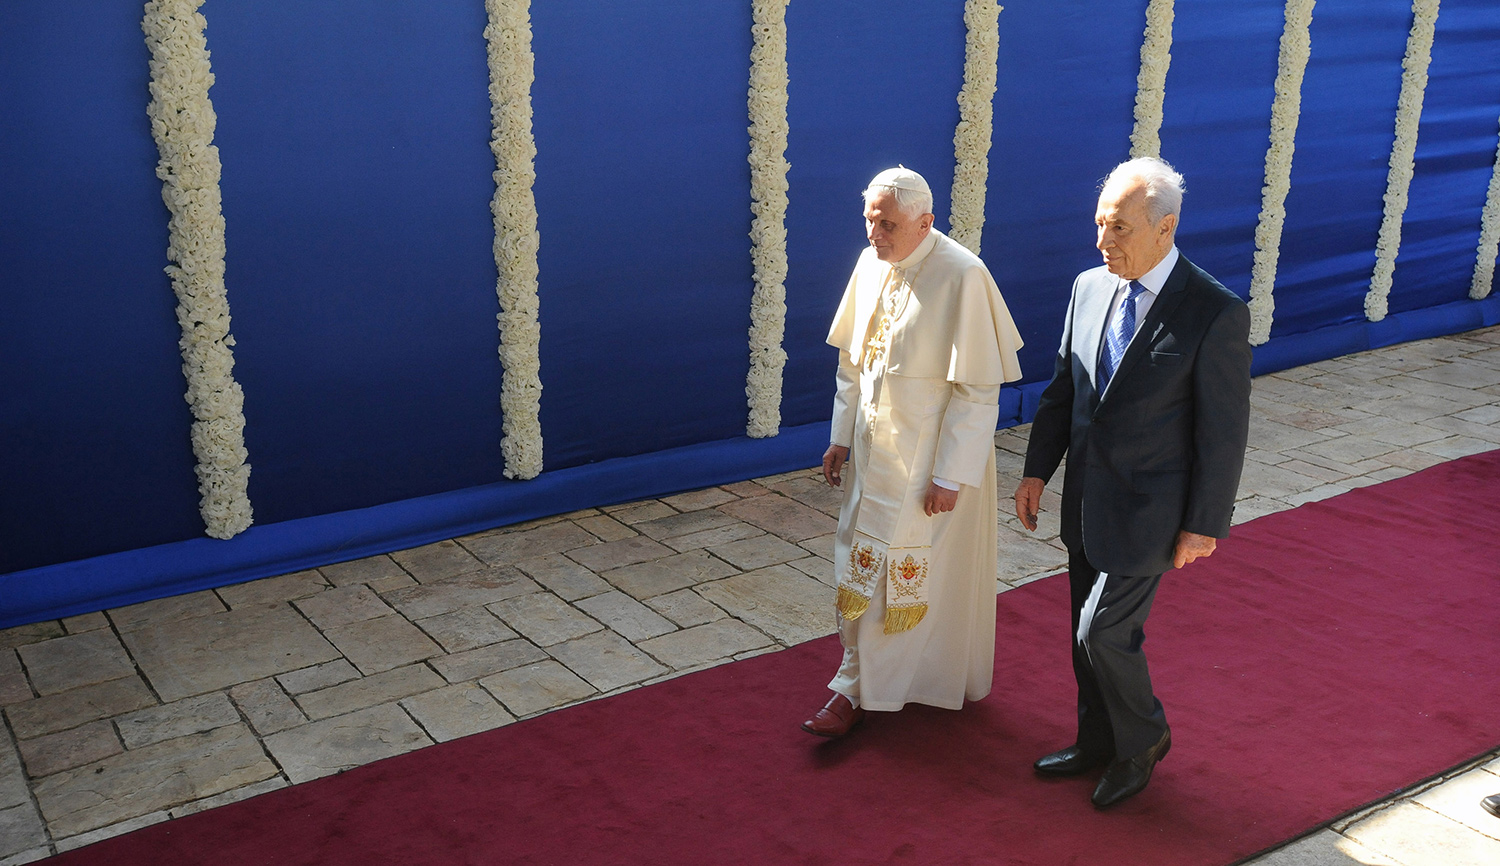 Then-Pope Benedict XVI with Shimon Peres, then president of Israel, in Jerusalem on May 11, 2009. Ahikam Seri/Bloomberg via Getty Images.